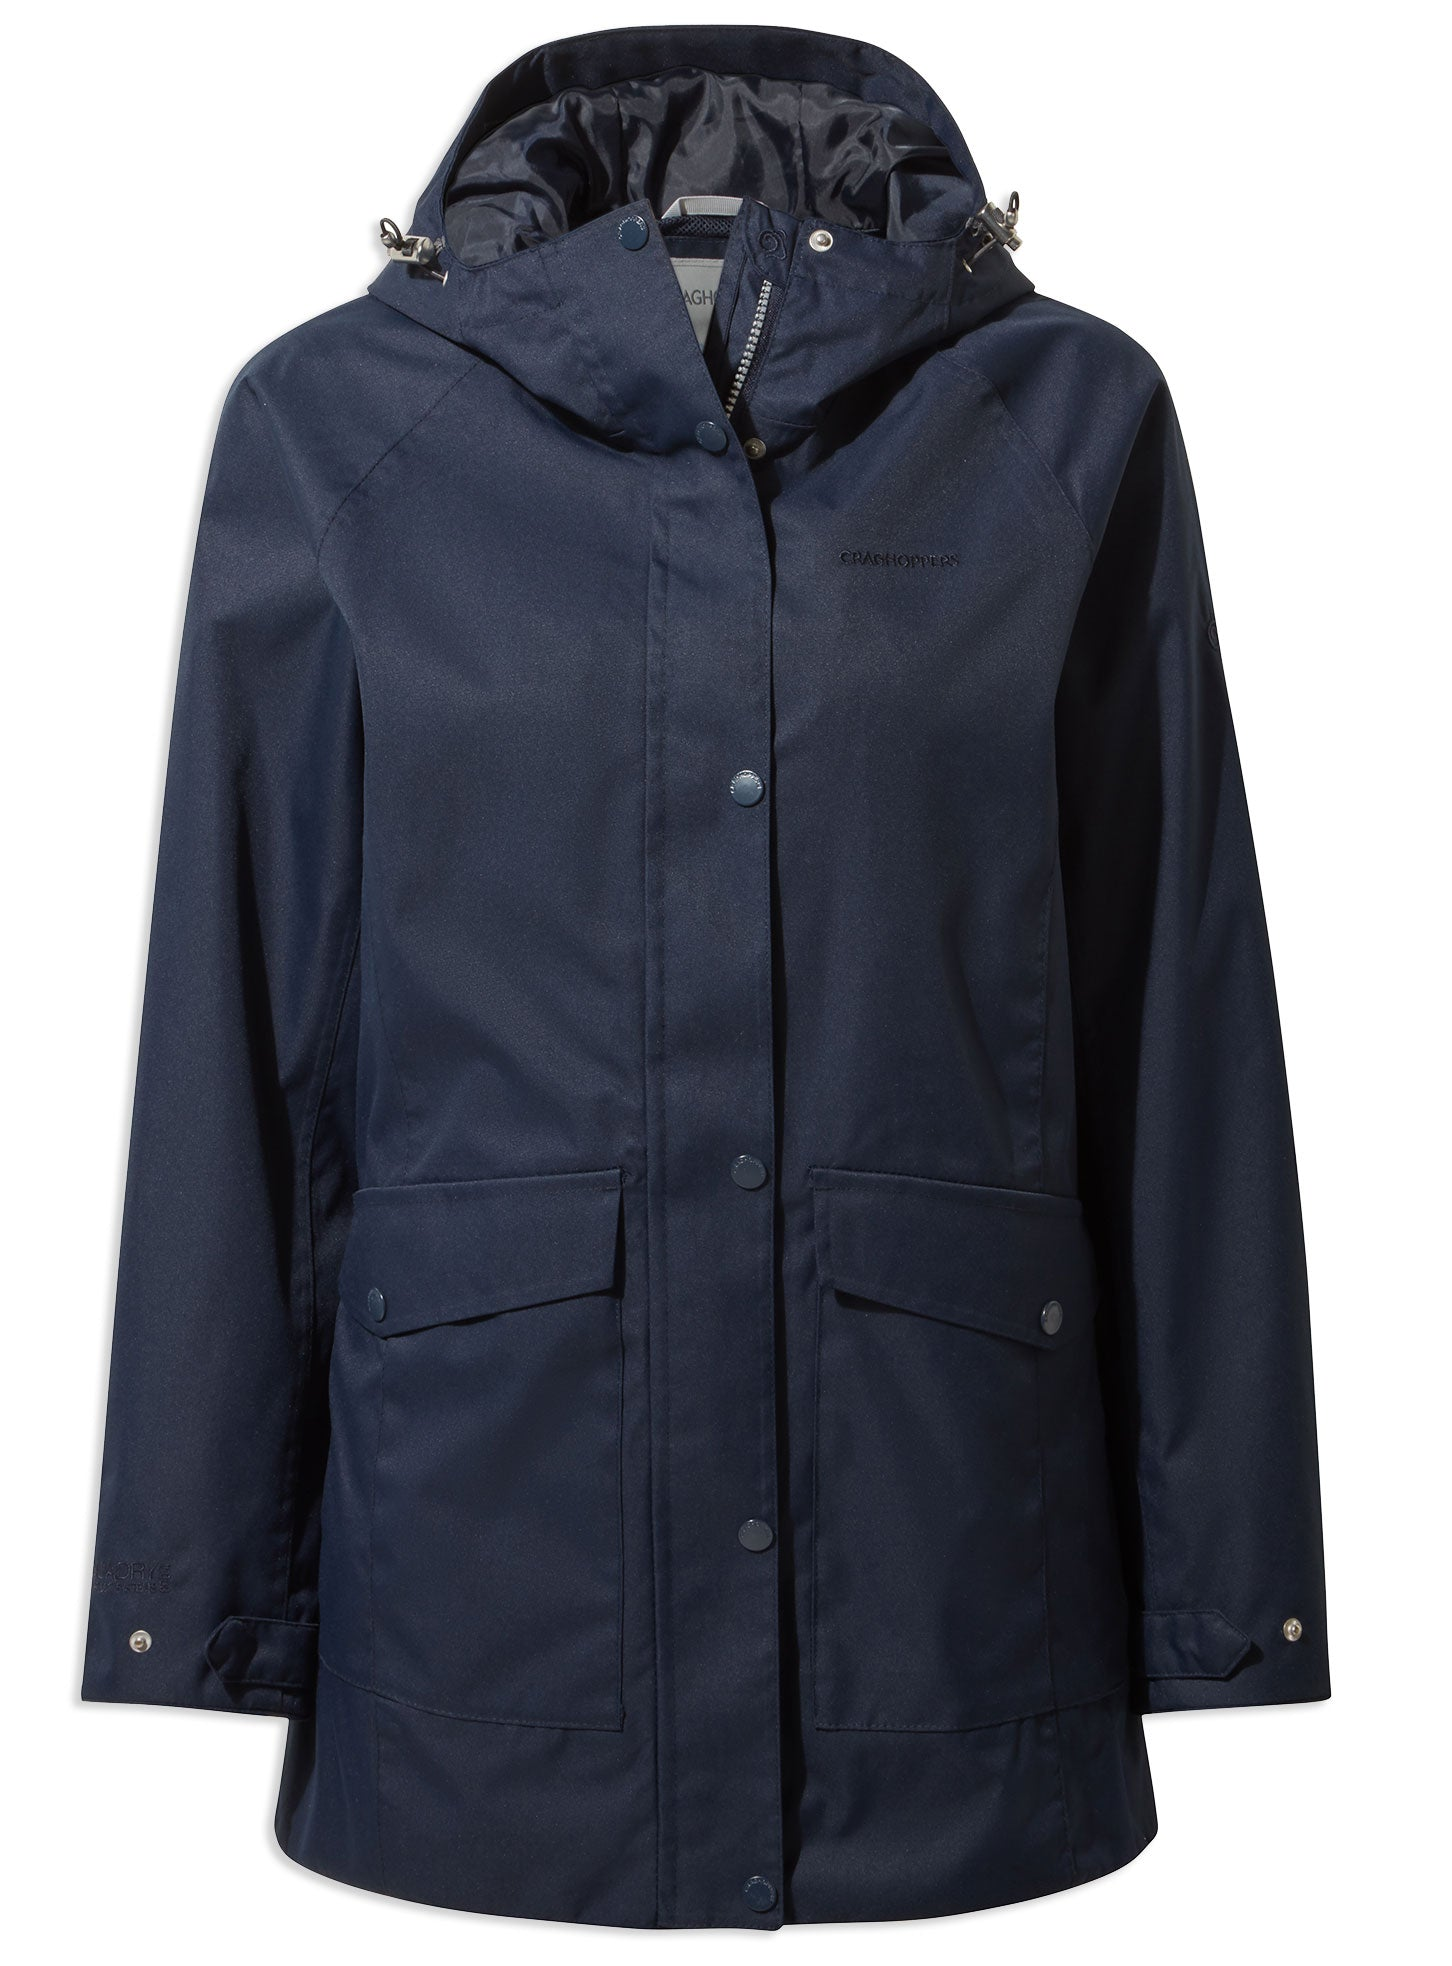 Craghoppers Madigan Classic III Jacket | Blue Navy